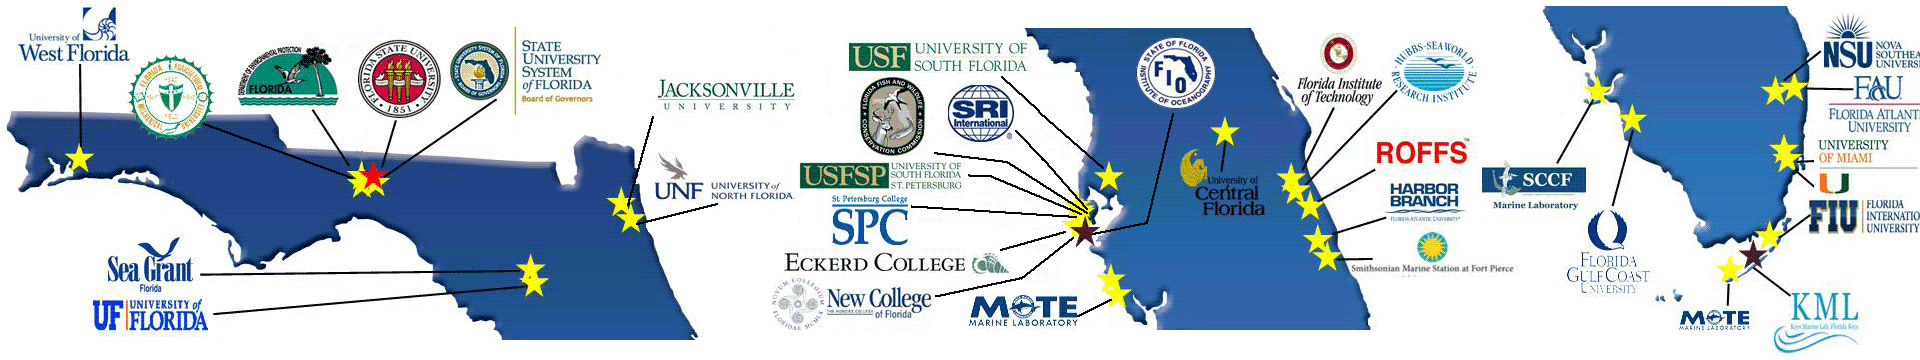 Stars & logos identifying member, Florida Institute of Oceanography (FIO) and State University System, board of governor's locations